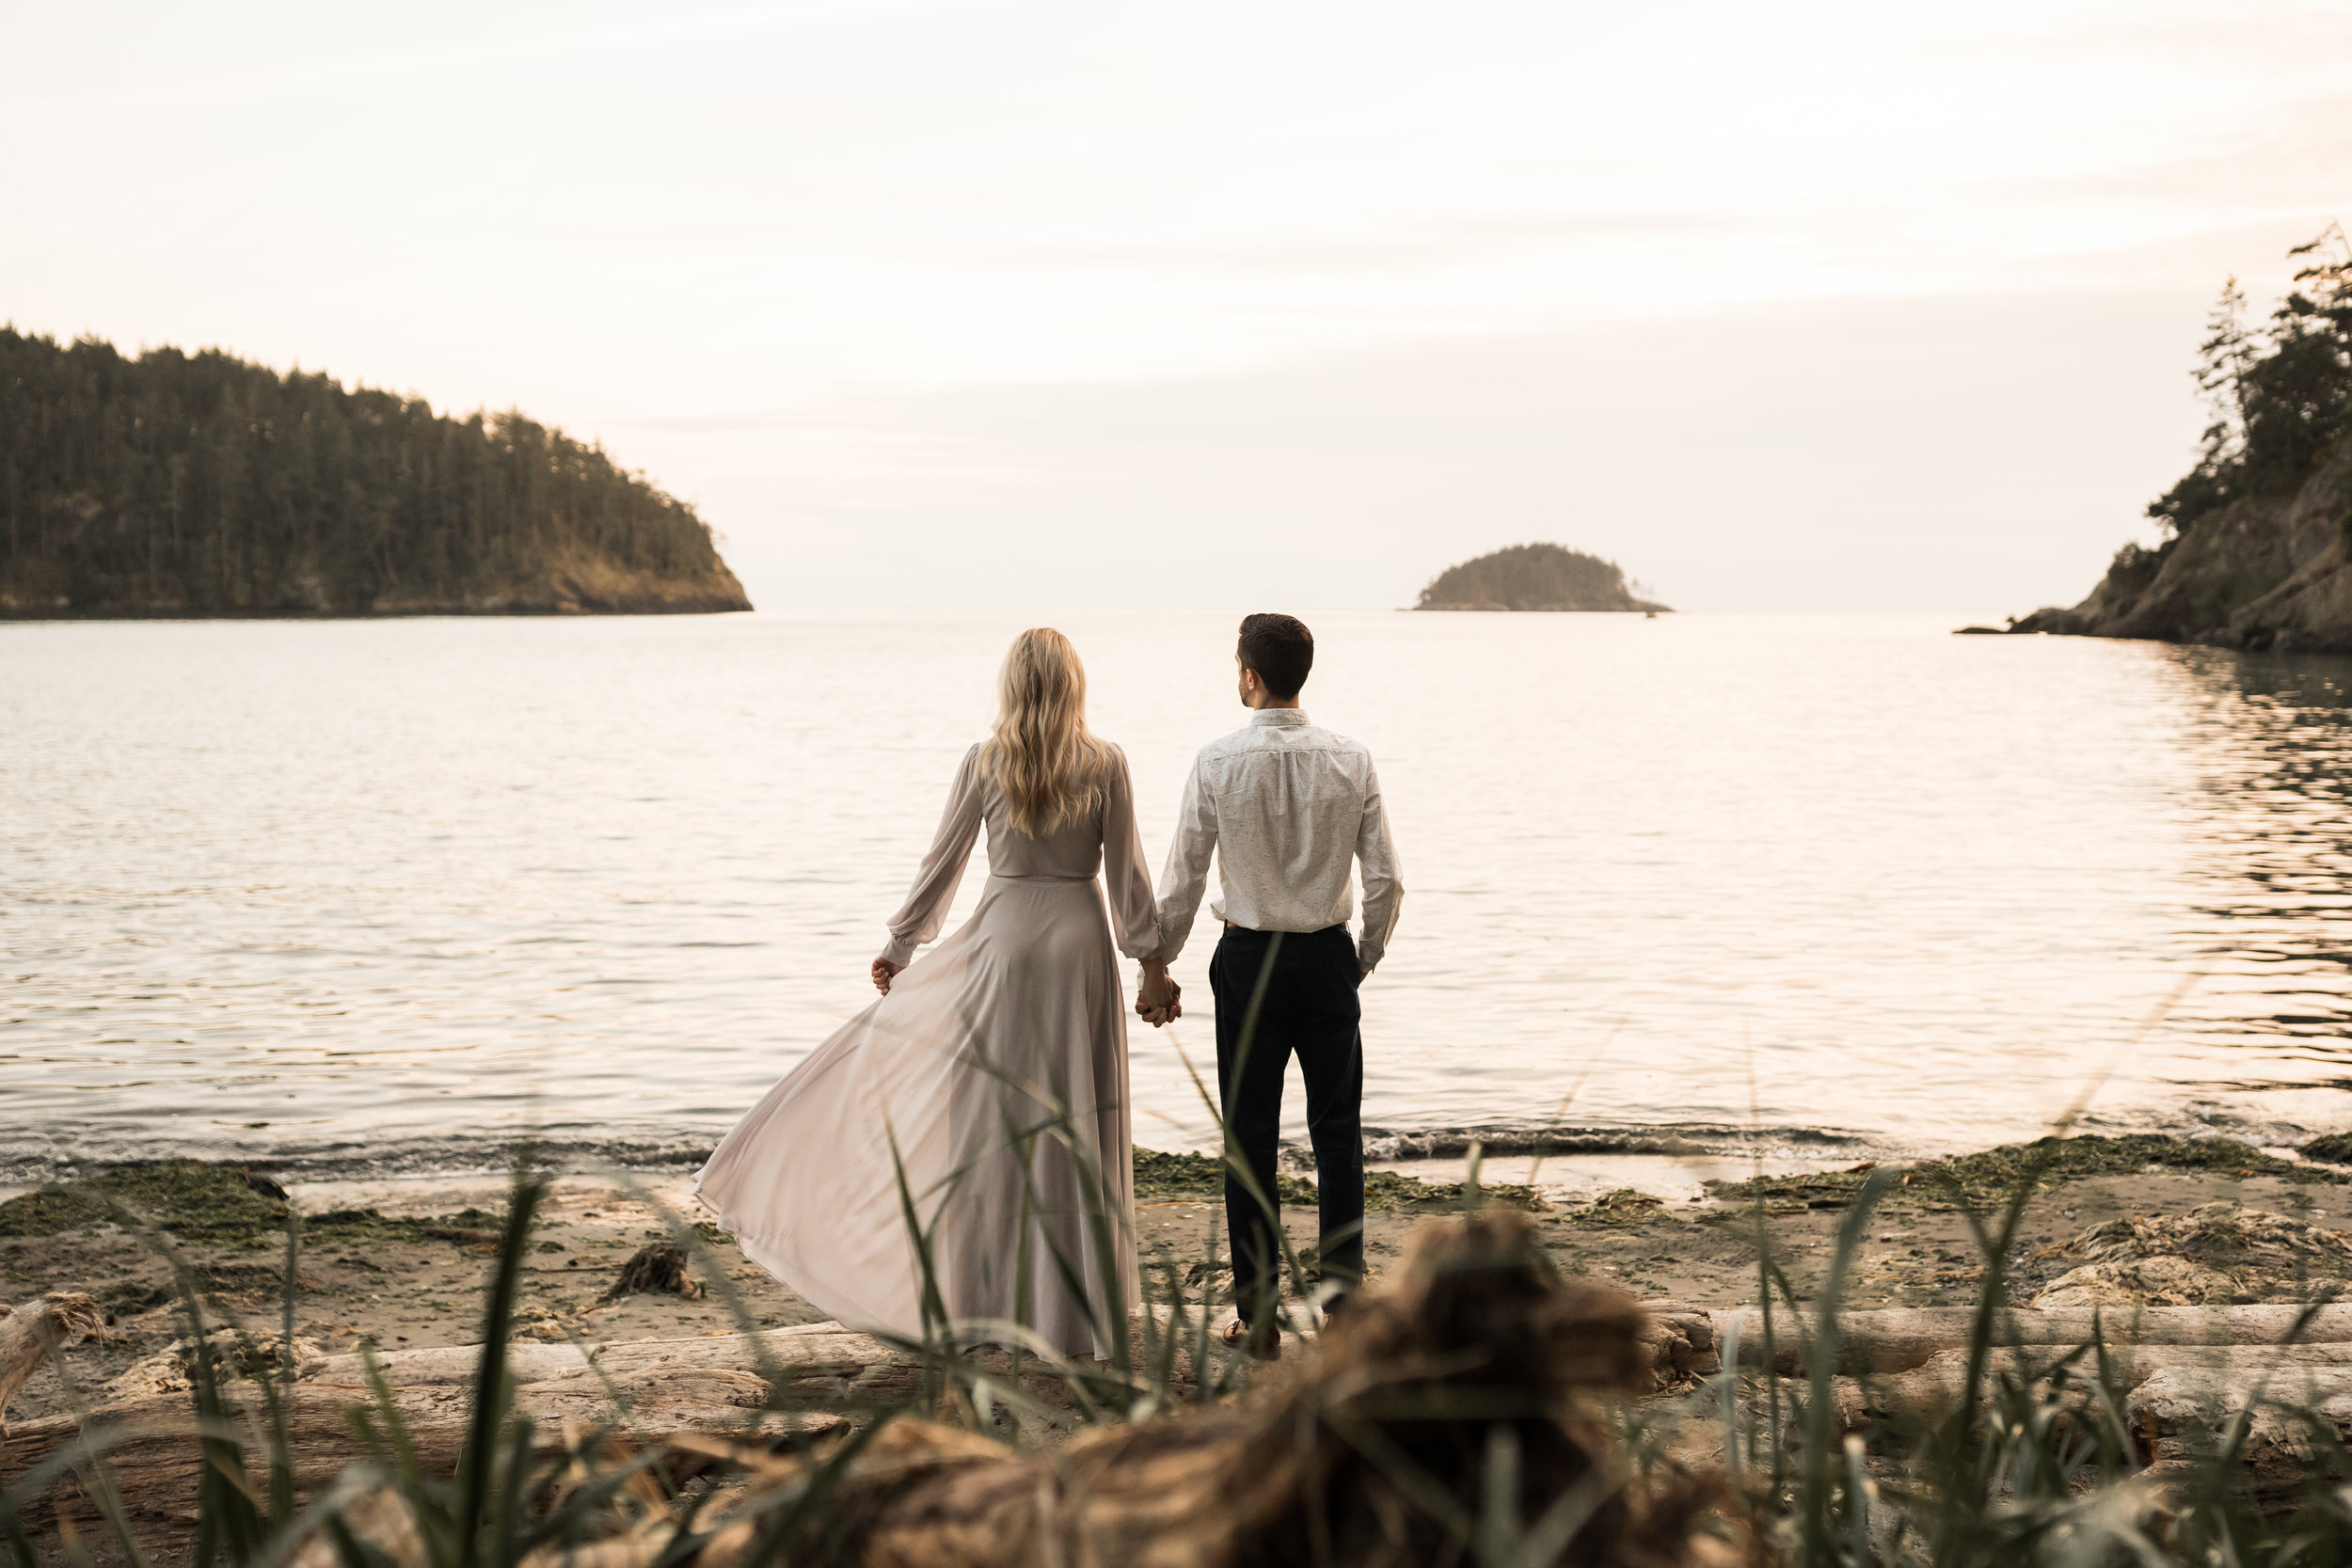 Deception Pass Engagement Session | Between the Pine Adventure Elopement Photography